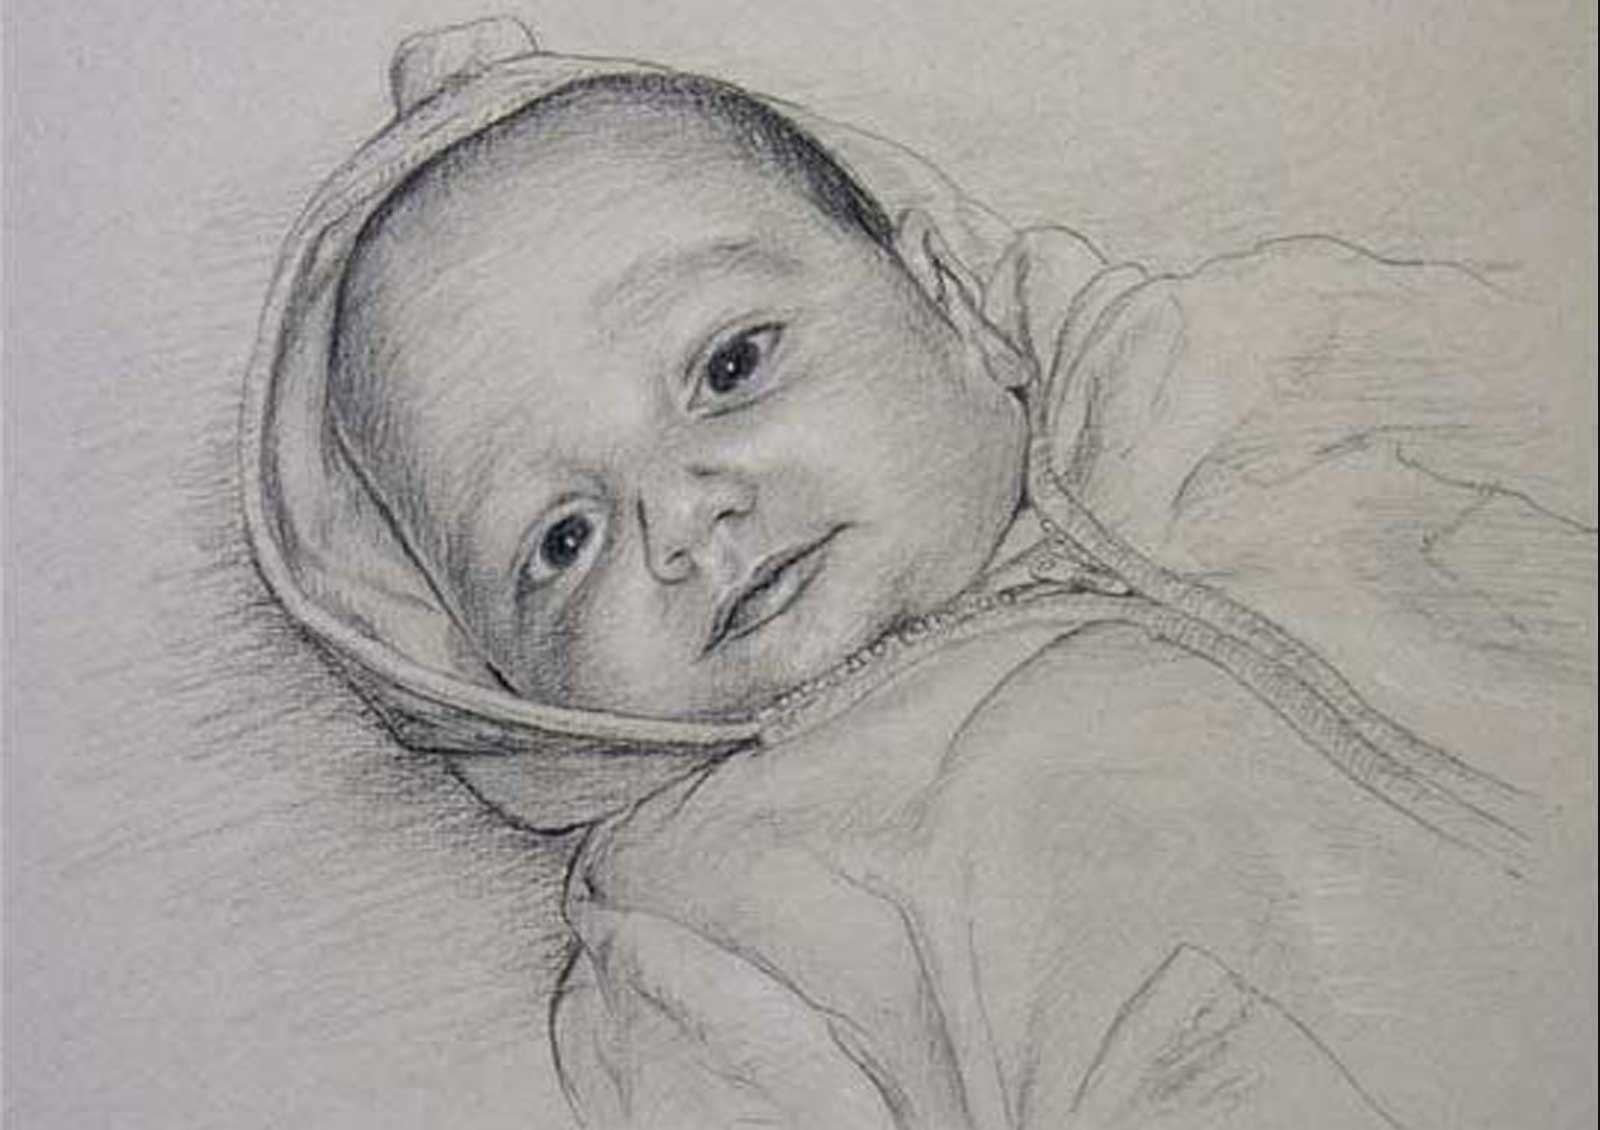 Baby portrait, drawing on paper